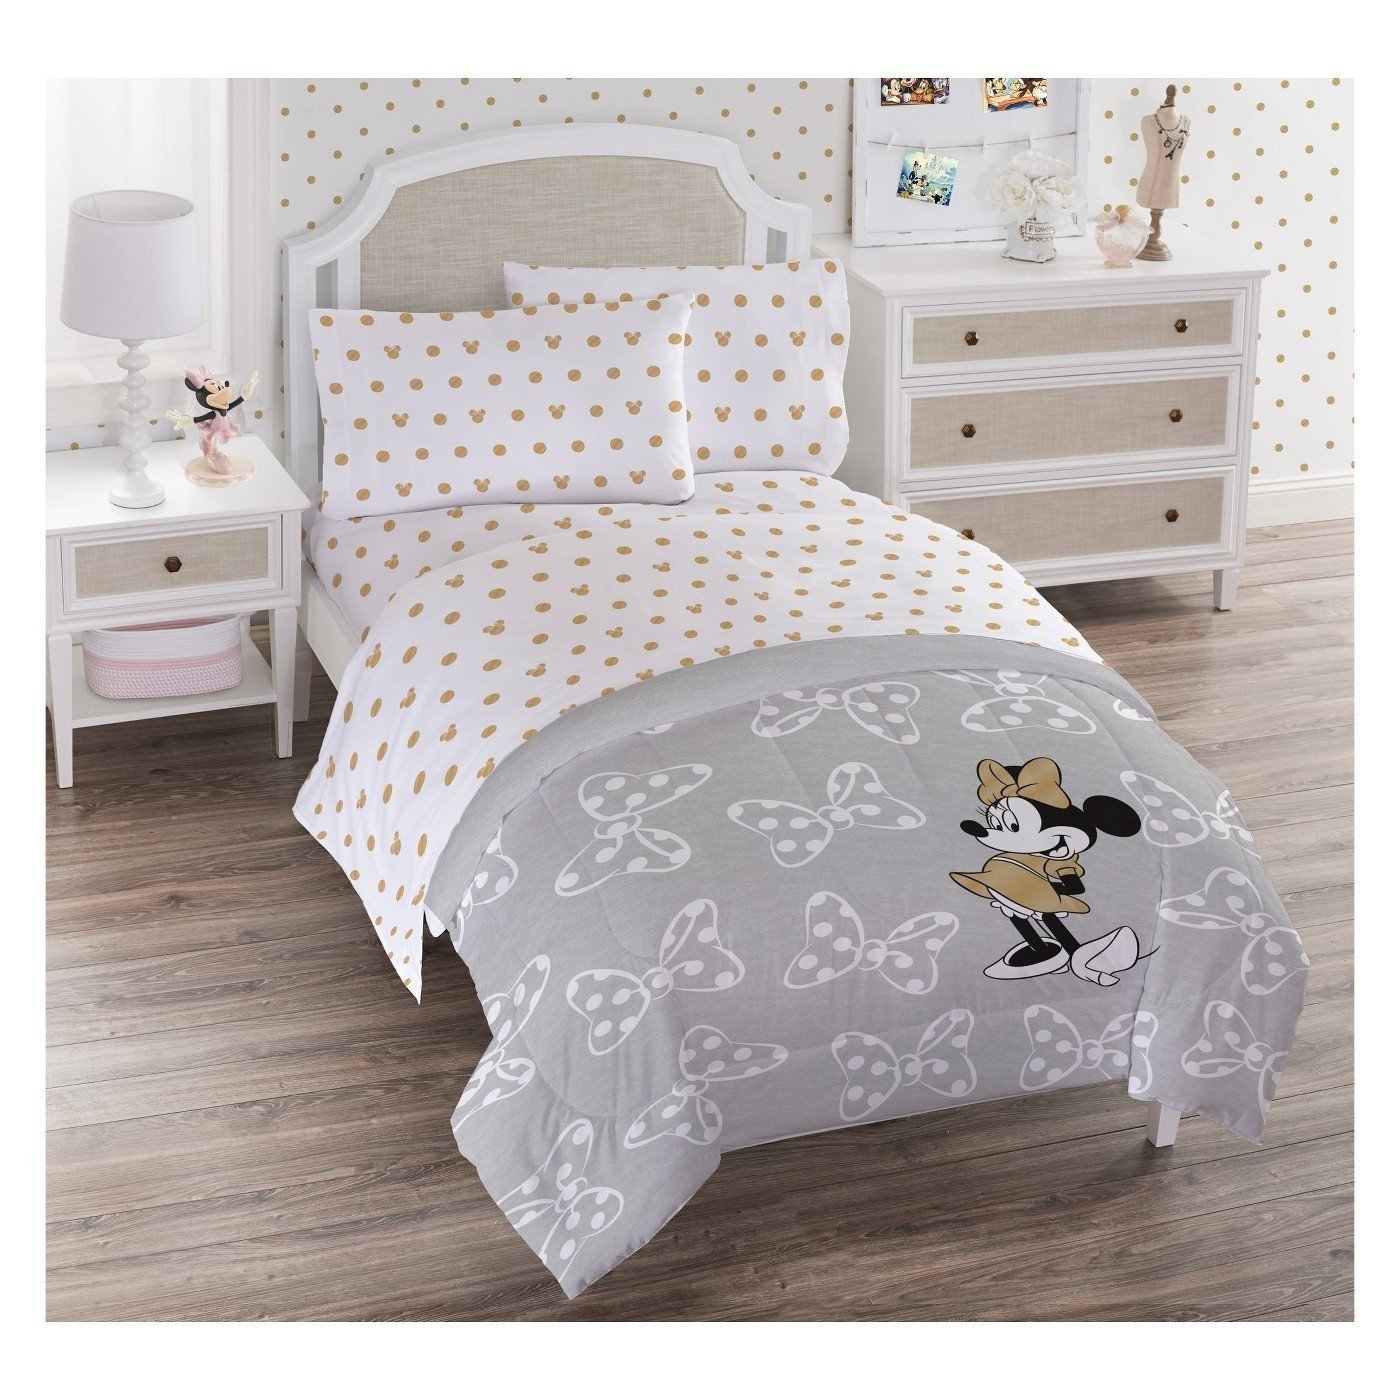 Disney Minnie Mouse Twin Sheet Set Gold/White, twin, White and Gold, Twin